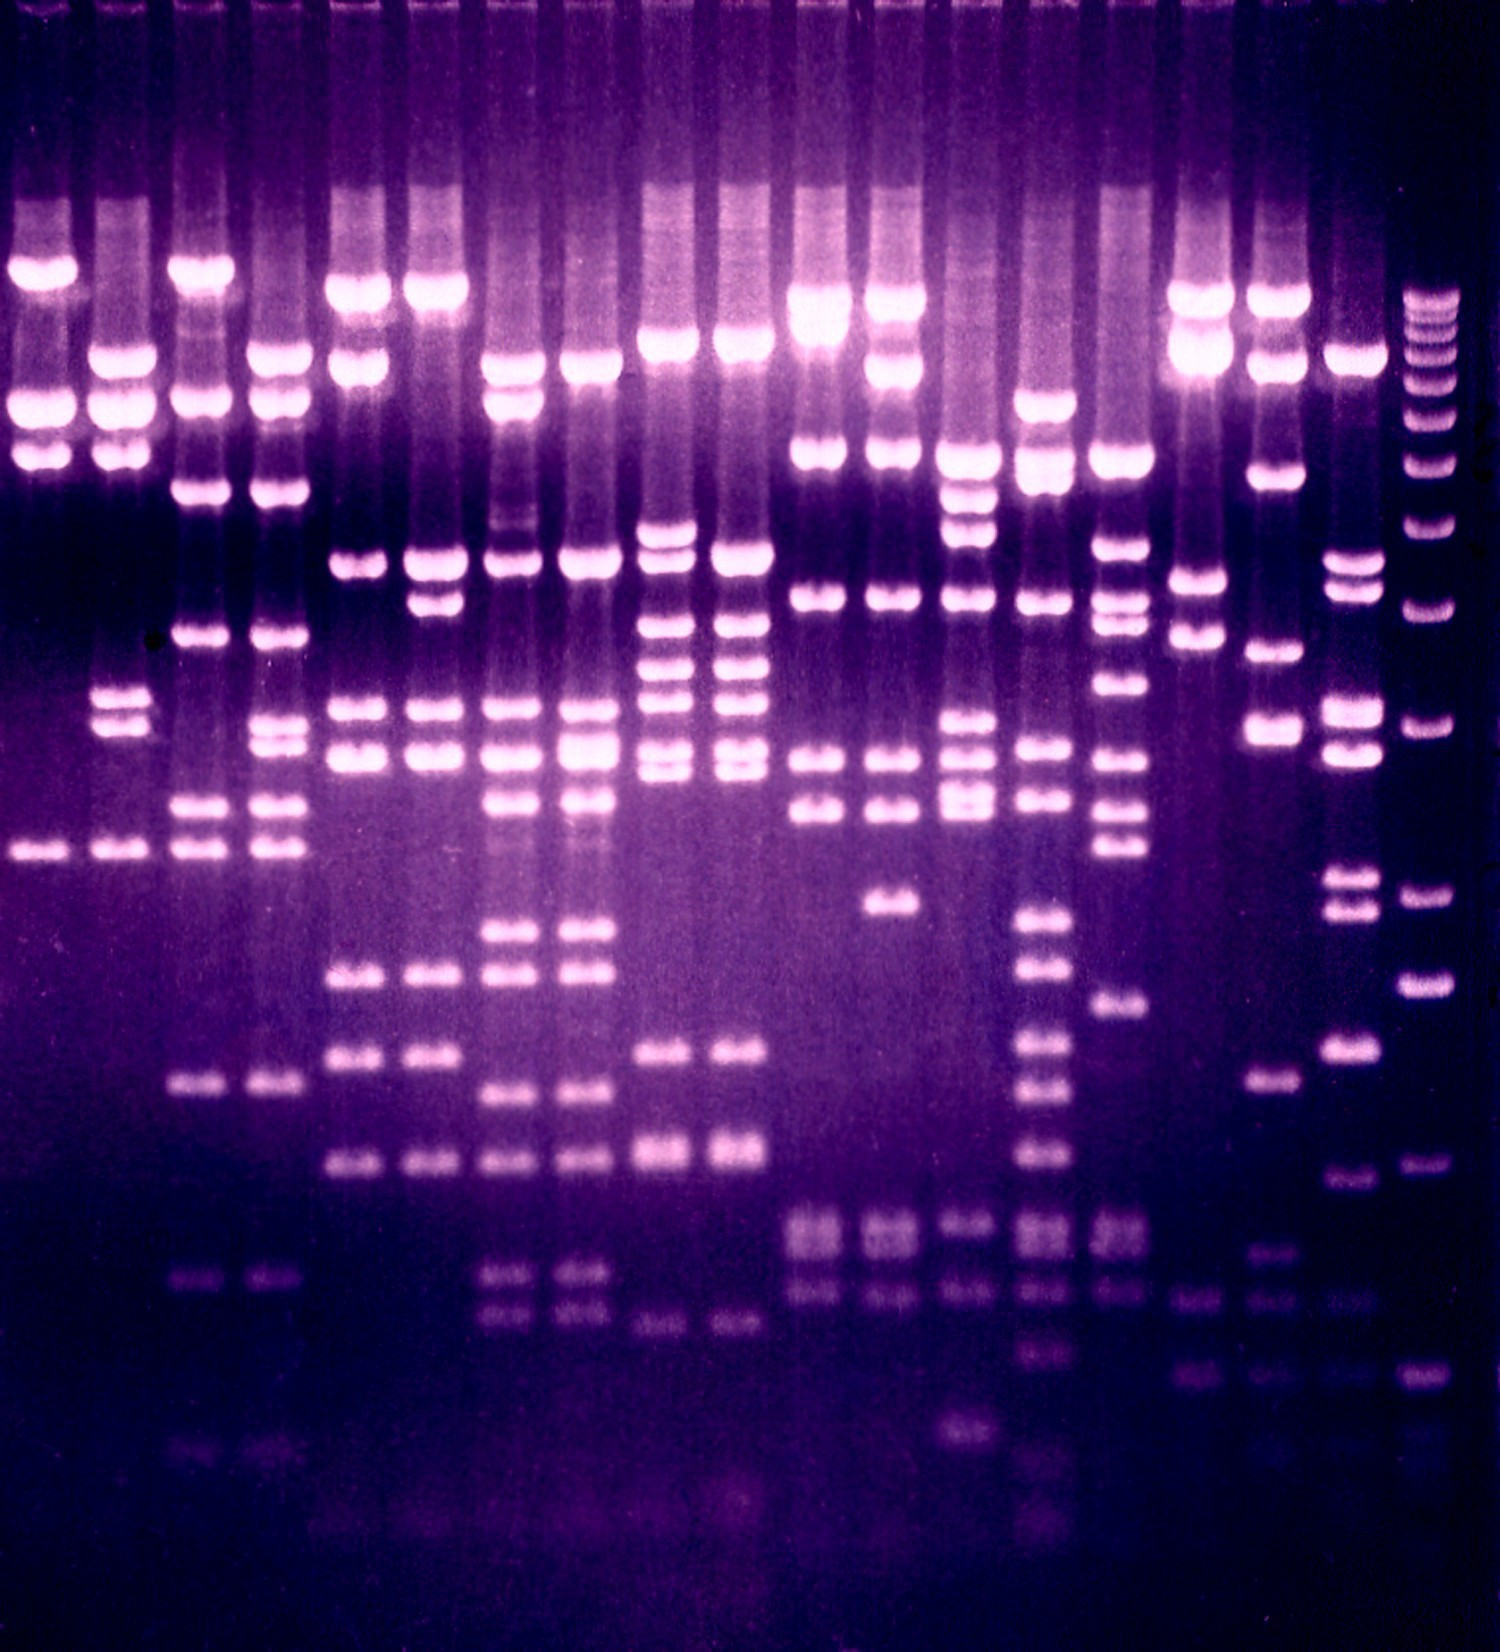 A DNA gel with different length fragments